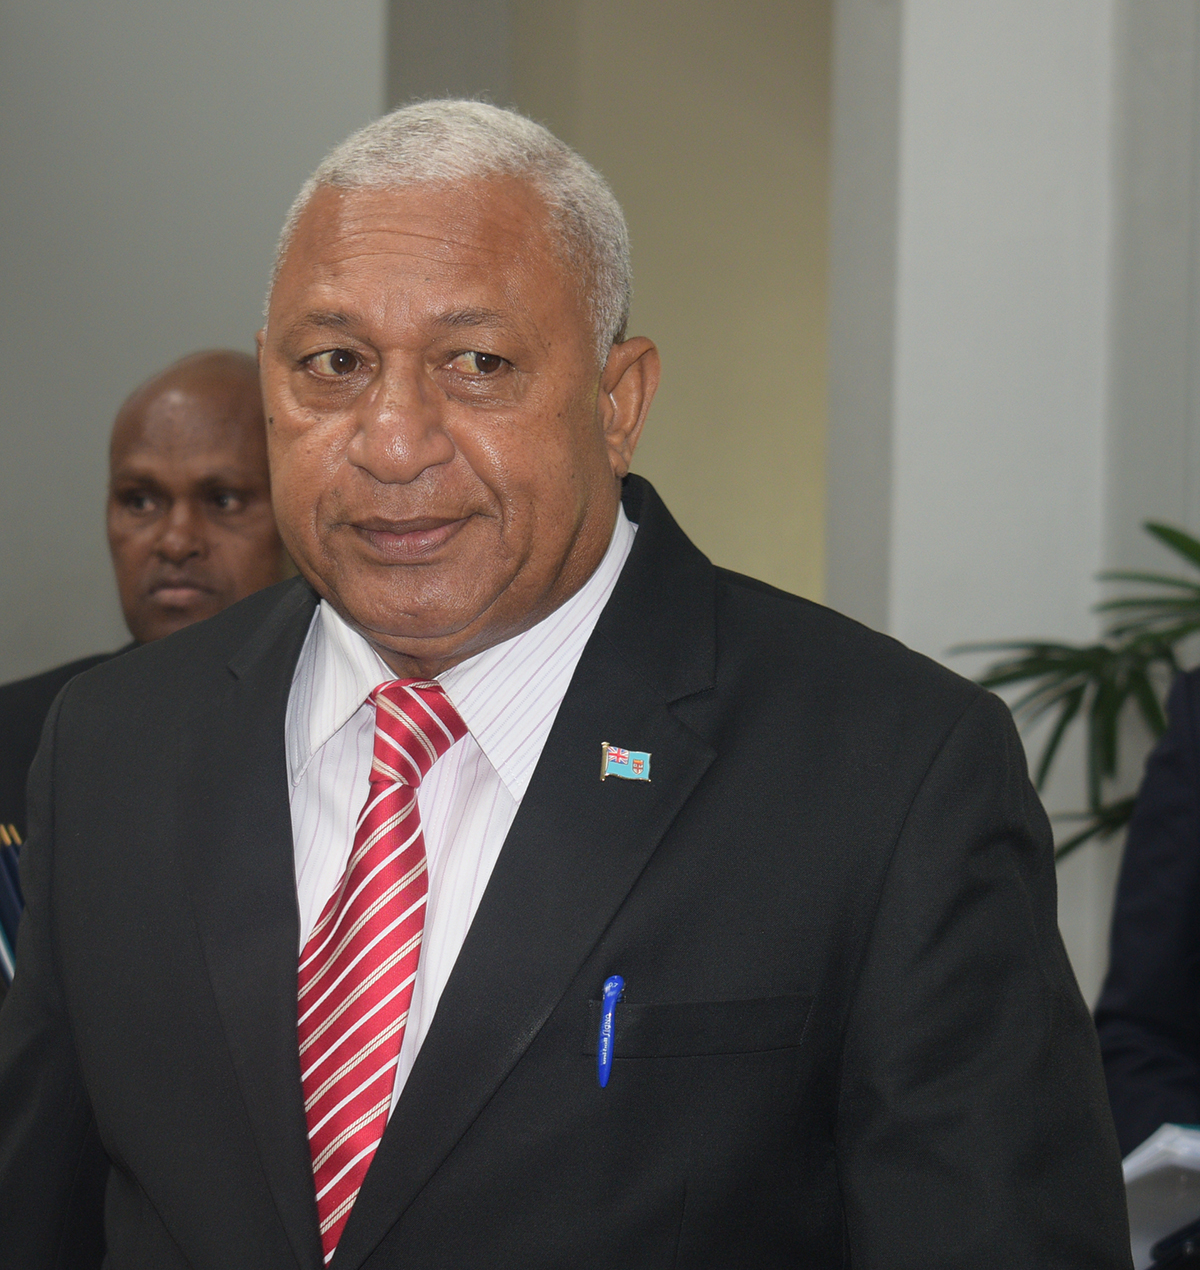 Prime Minister and Minister for iTaukei Affairs and Sugar Industry Voreqe Bainimarama at the parliament house on February 11,2019.Photo:Simione Haravanua.